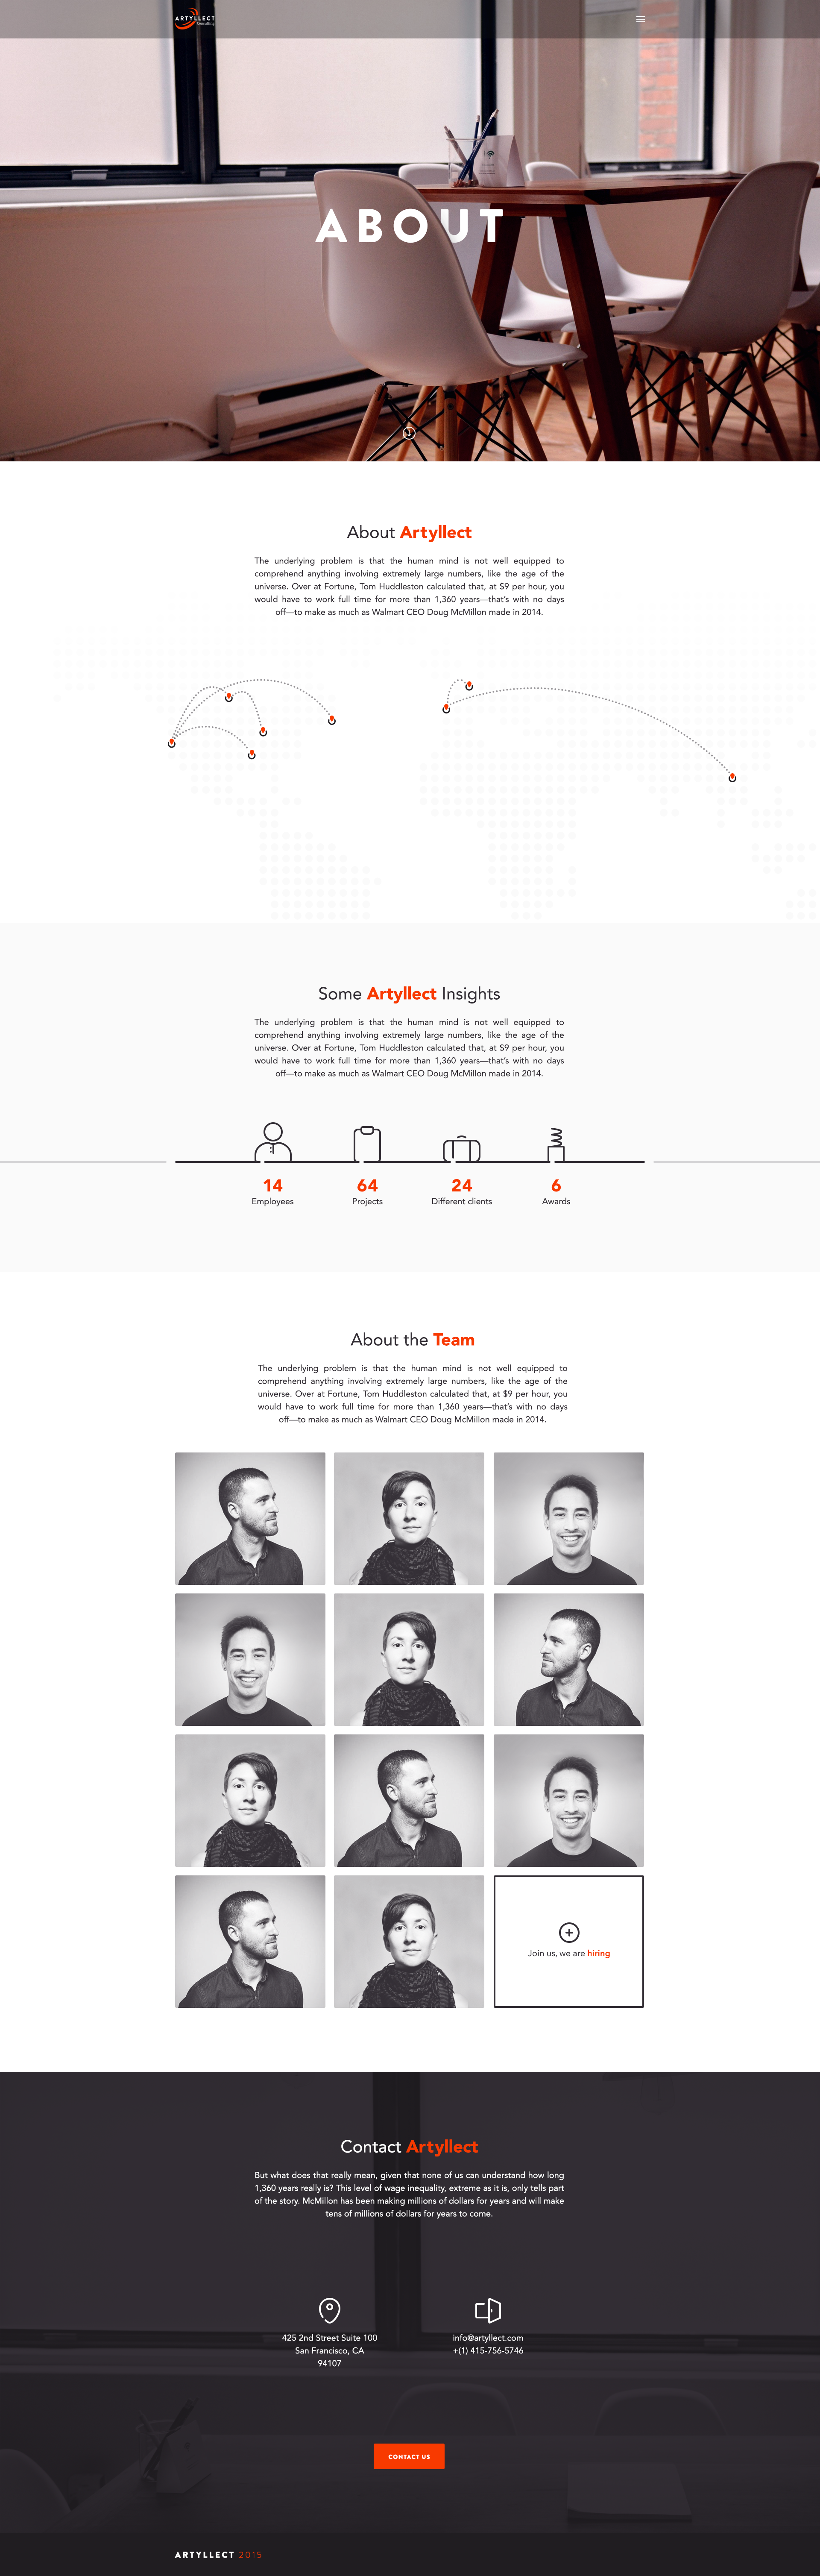 About dribbble 01